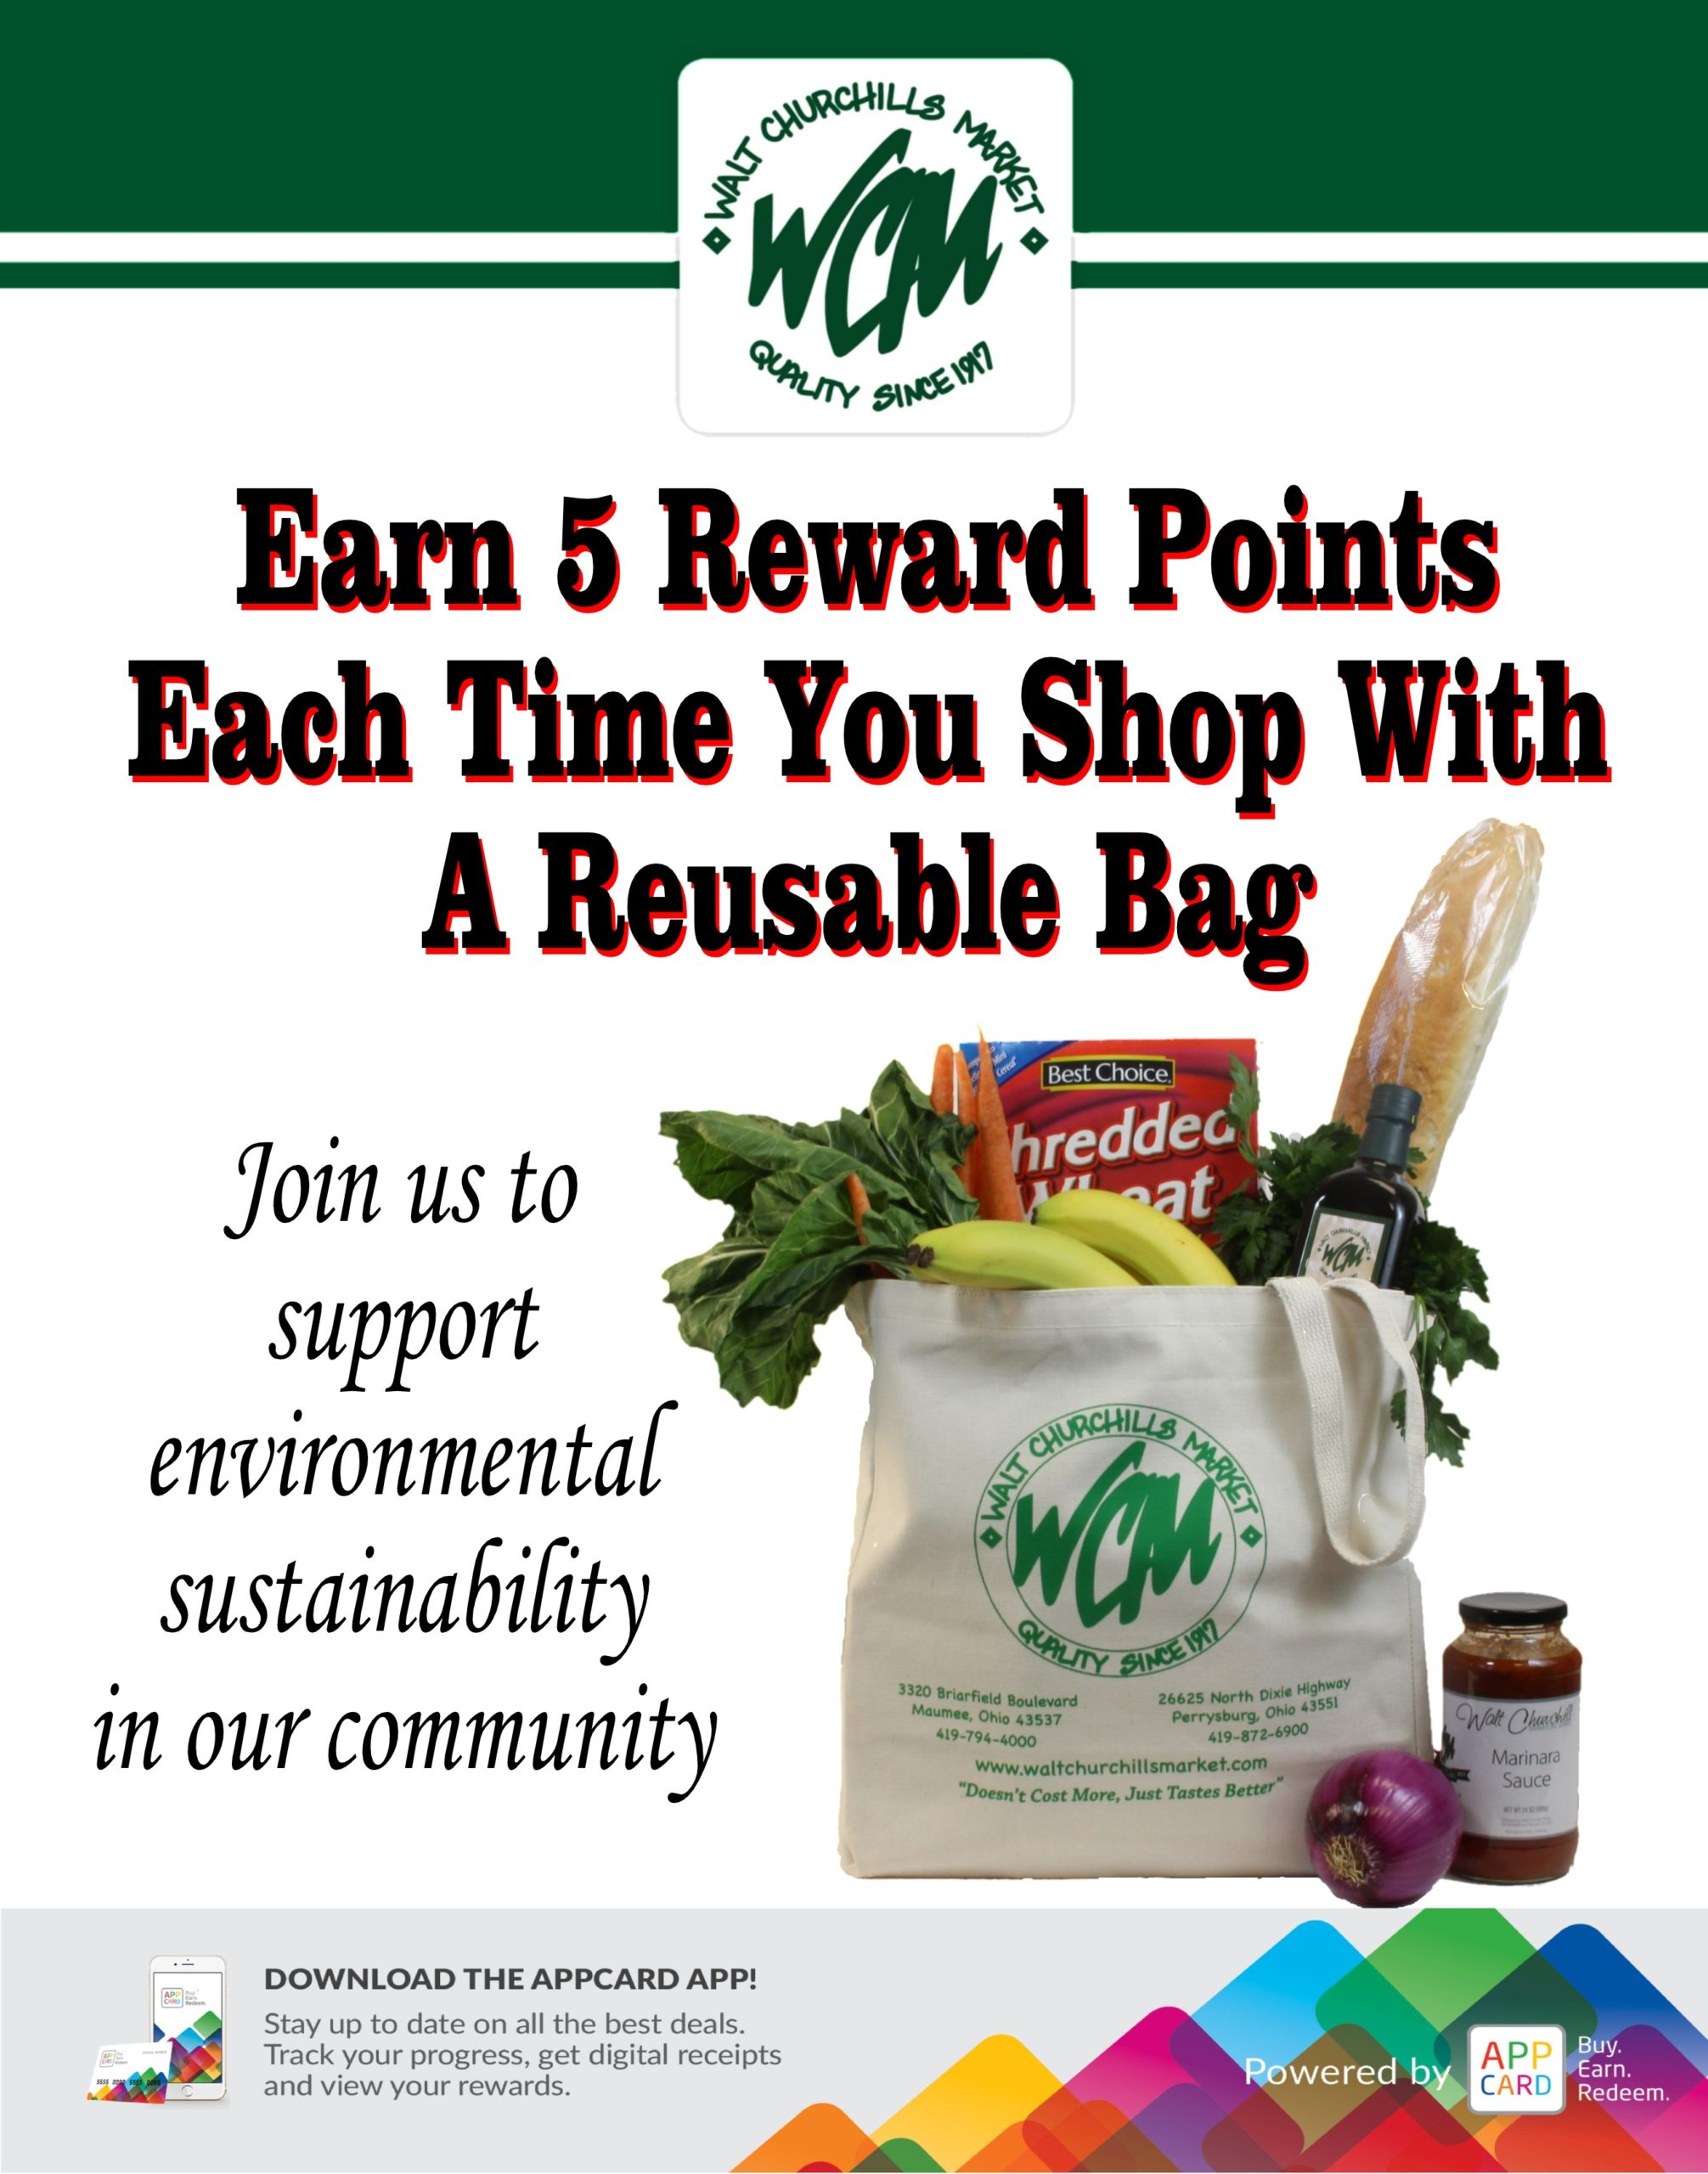 Earn 5 WCM Rewards Points each time you shop with a reusable bag.